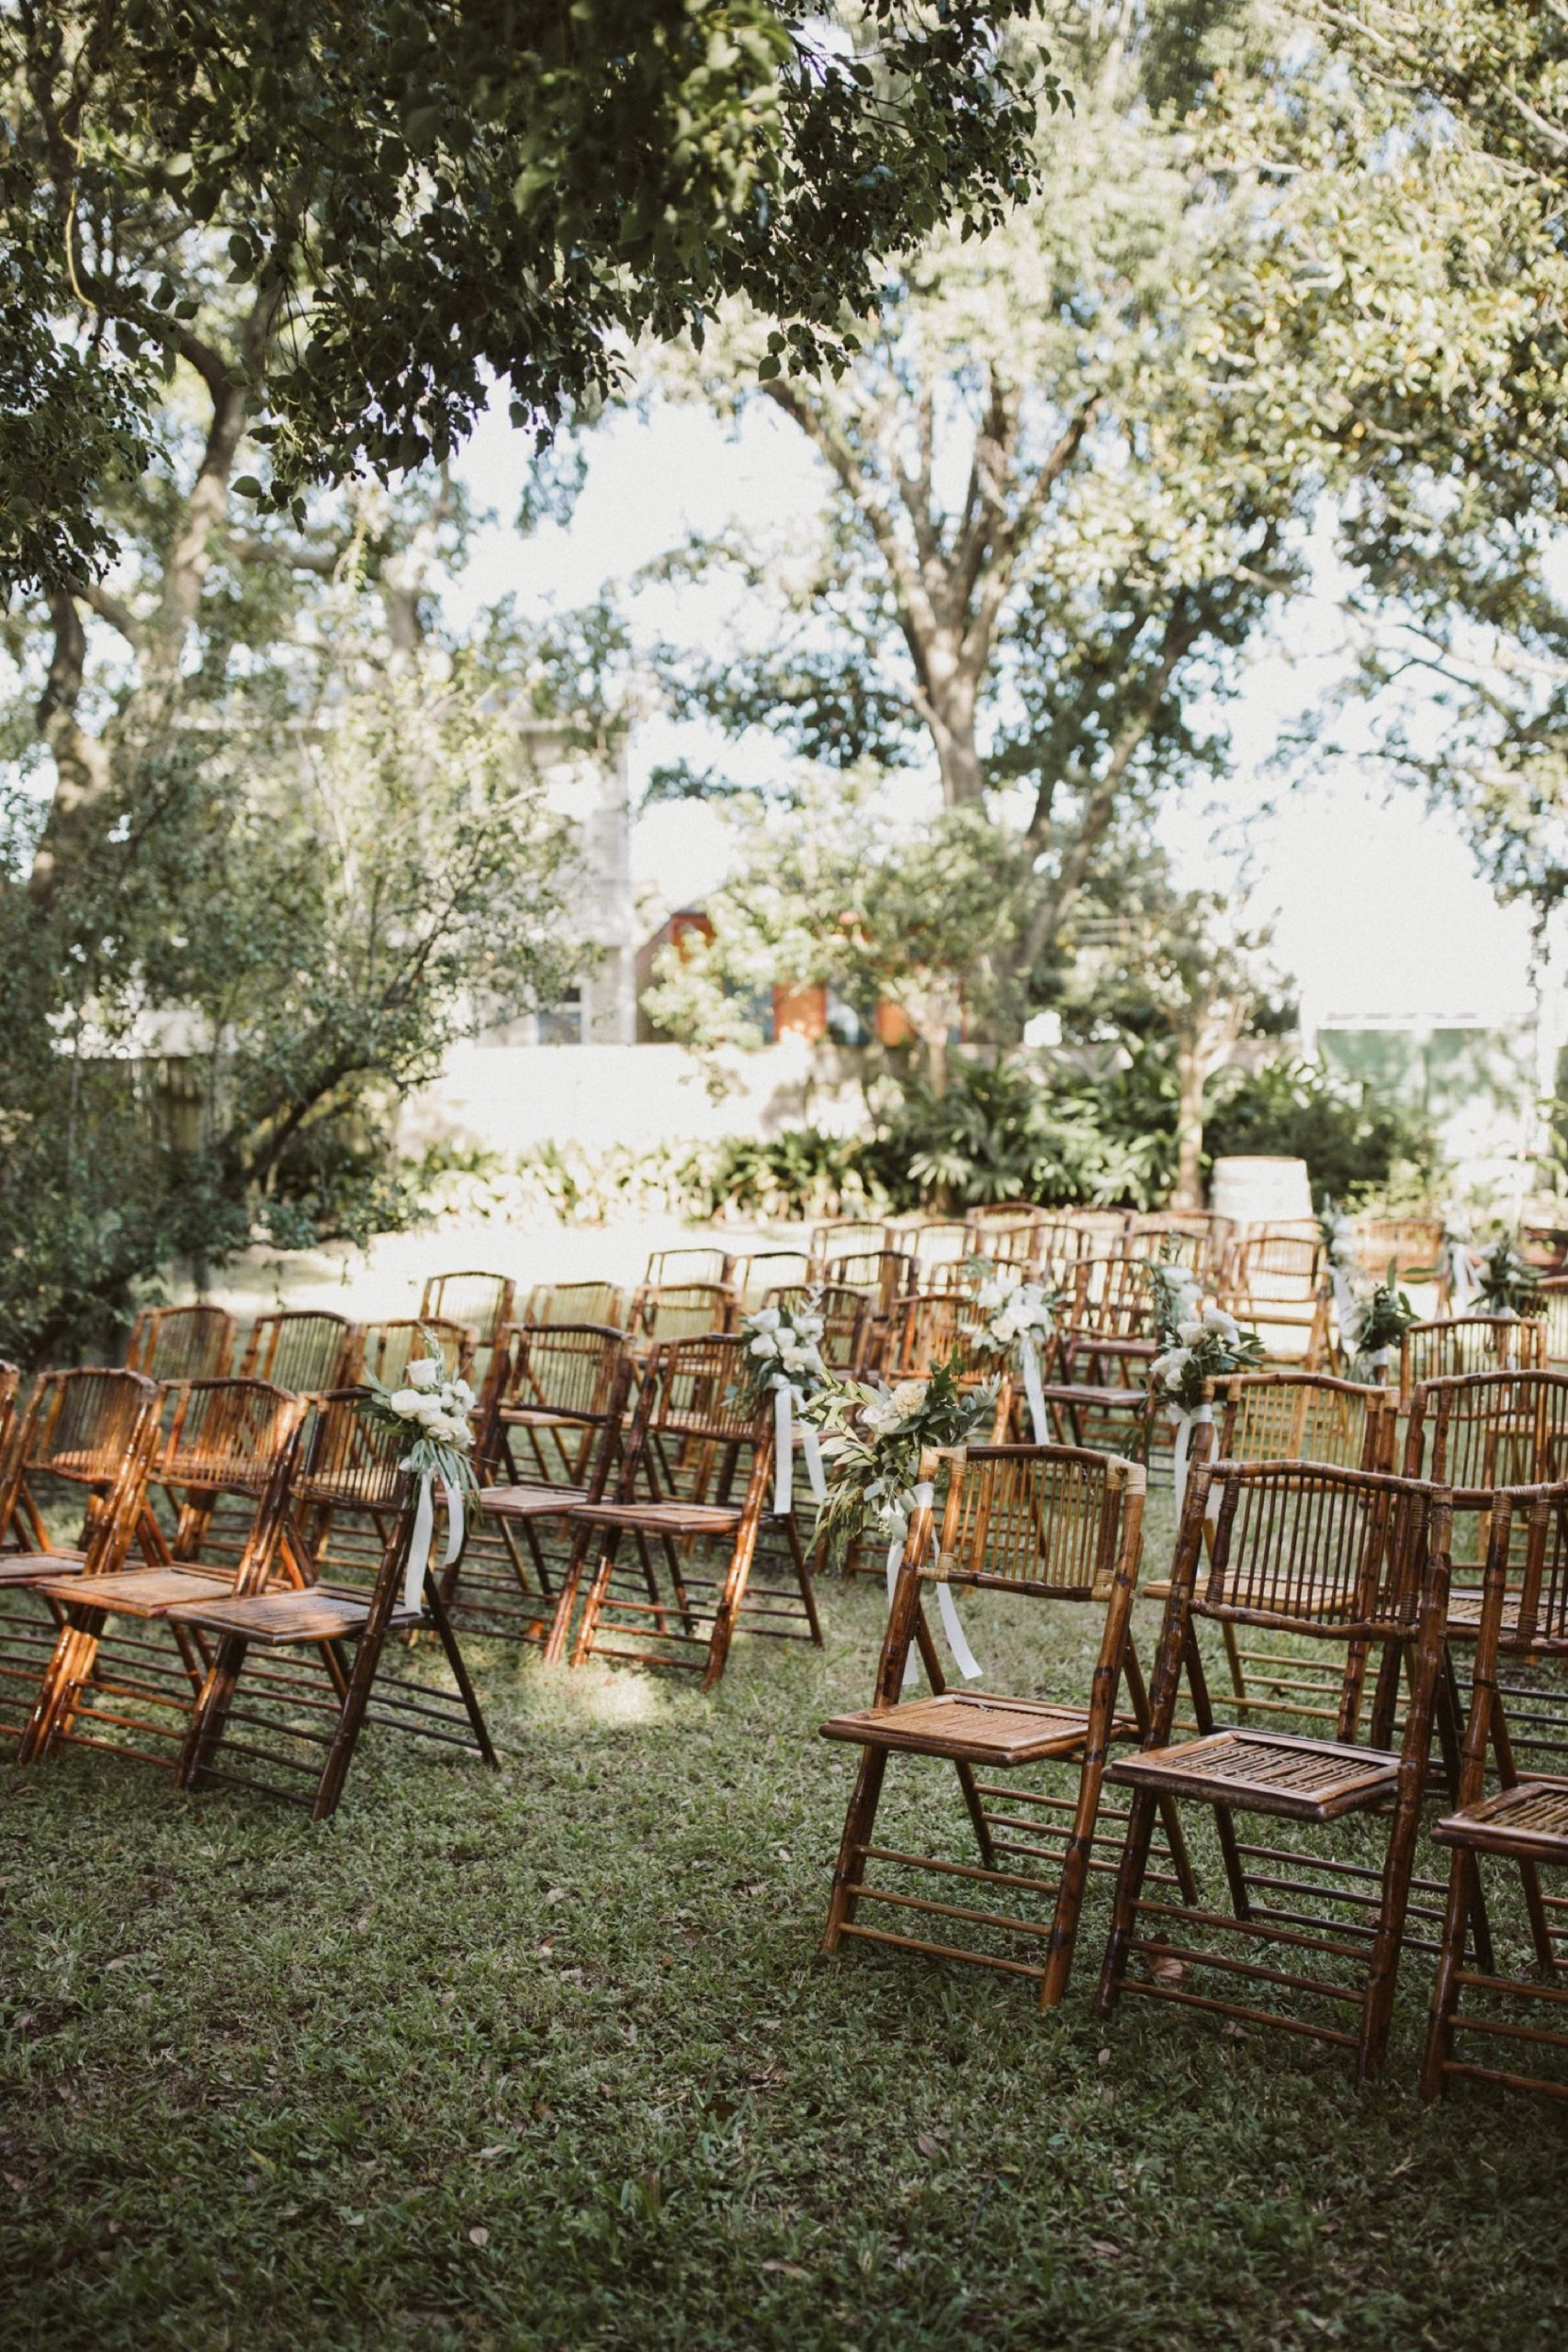 Backyard New Orleans Wedding, New Orleans Backyard Wedding Ideas, Backyard NOLA Wedding, New Orleans Backyard Party Inspiration, Baby Goat Wedding inspiration, VW bus wedding photos, VW Bus wedding inspiration, wedding inspiration for NOLA, Backyard wedding ideas, Louisiana backyard wedding ideas, NOLA affordable wedding ideas, New Orleans affordable wedding ideas, French Quarter affordable wedding ideas, Affordable wedding inspiration New Orleans